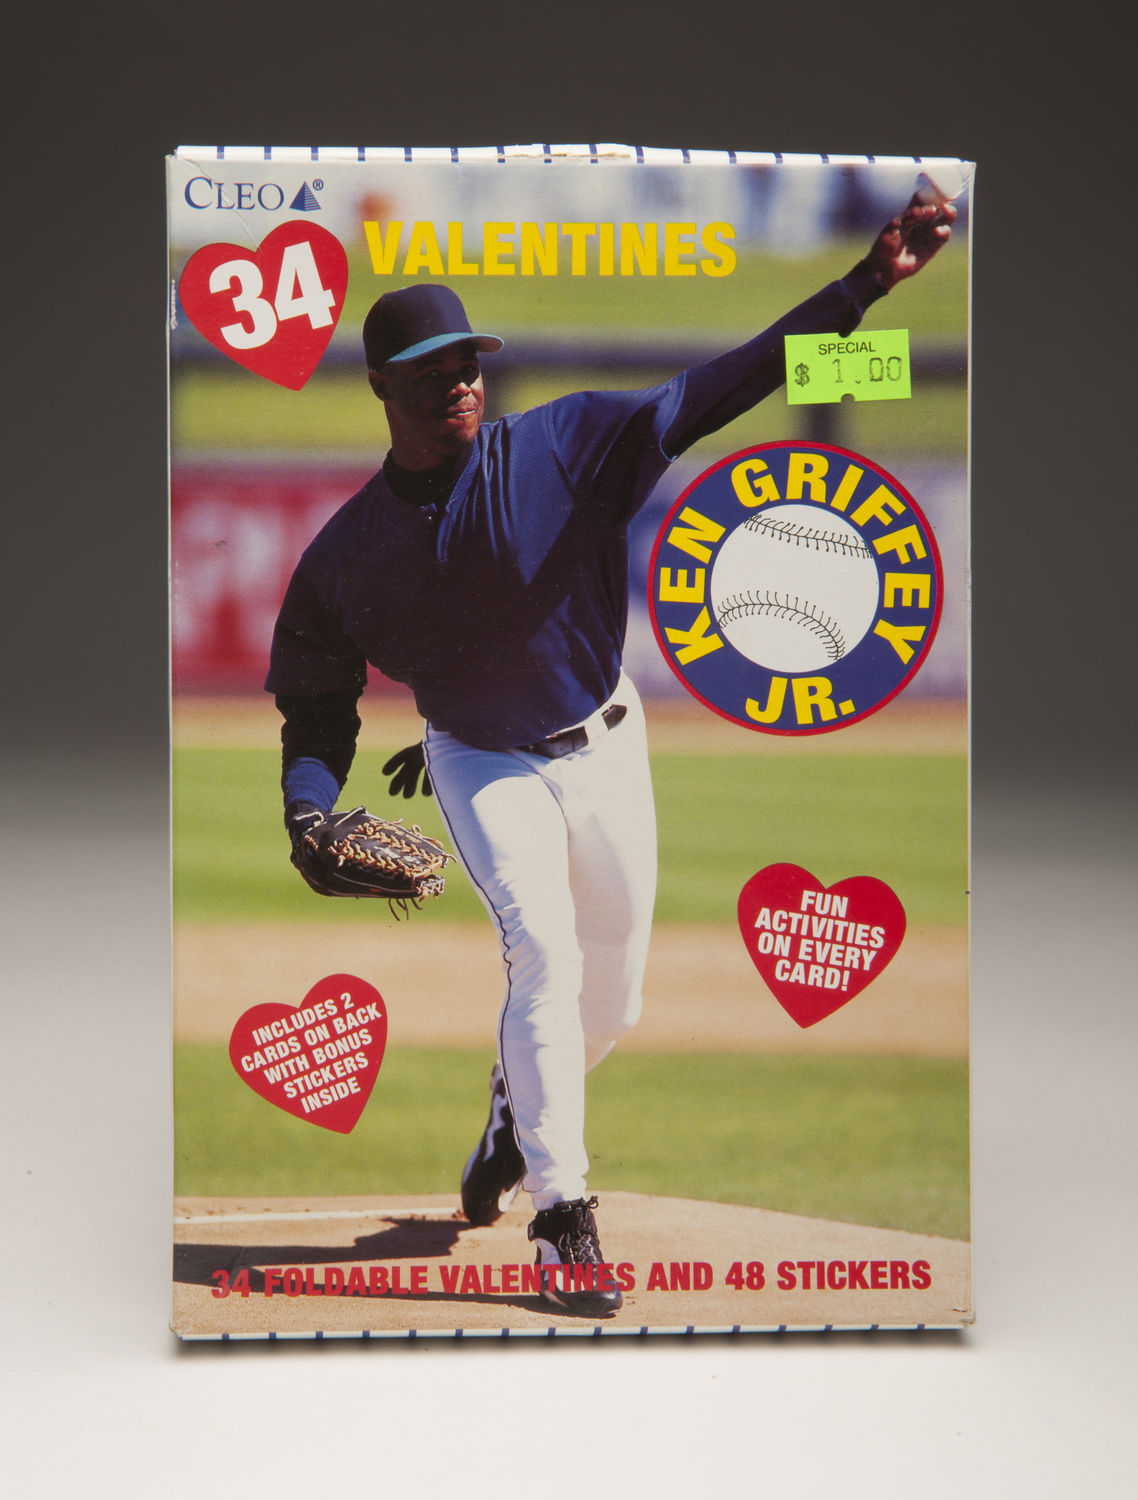 aadf4c5e93 A Ken Griffey Jr. Valentine's Day card, featuring a rare appearance on the  pitcher's mound. B-547-2011 (Milo Stewart, Jr. / National Baseball Hall of  Fame)